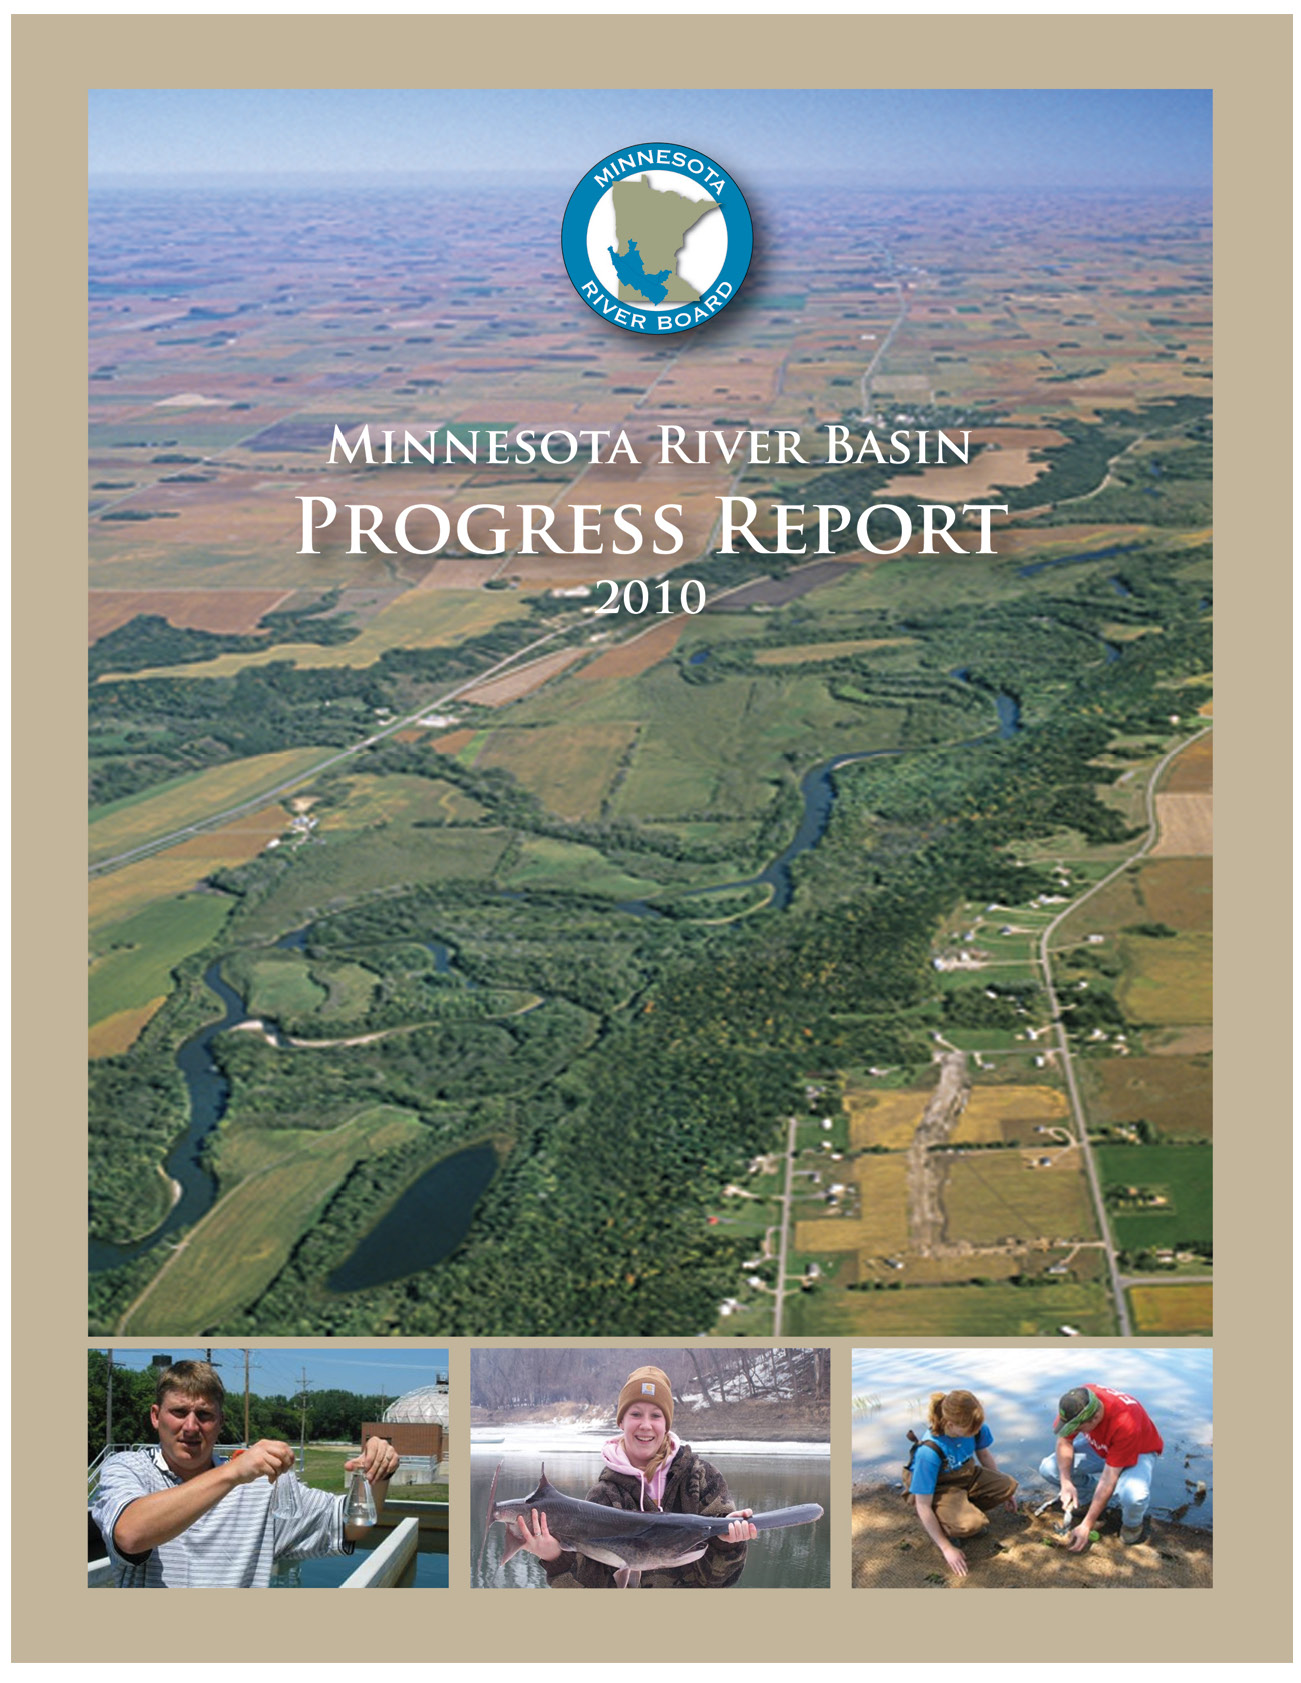 Minnesota River Basin Progress Report 2010